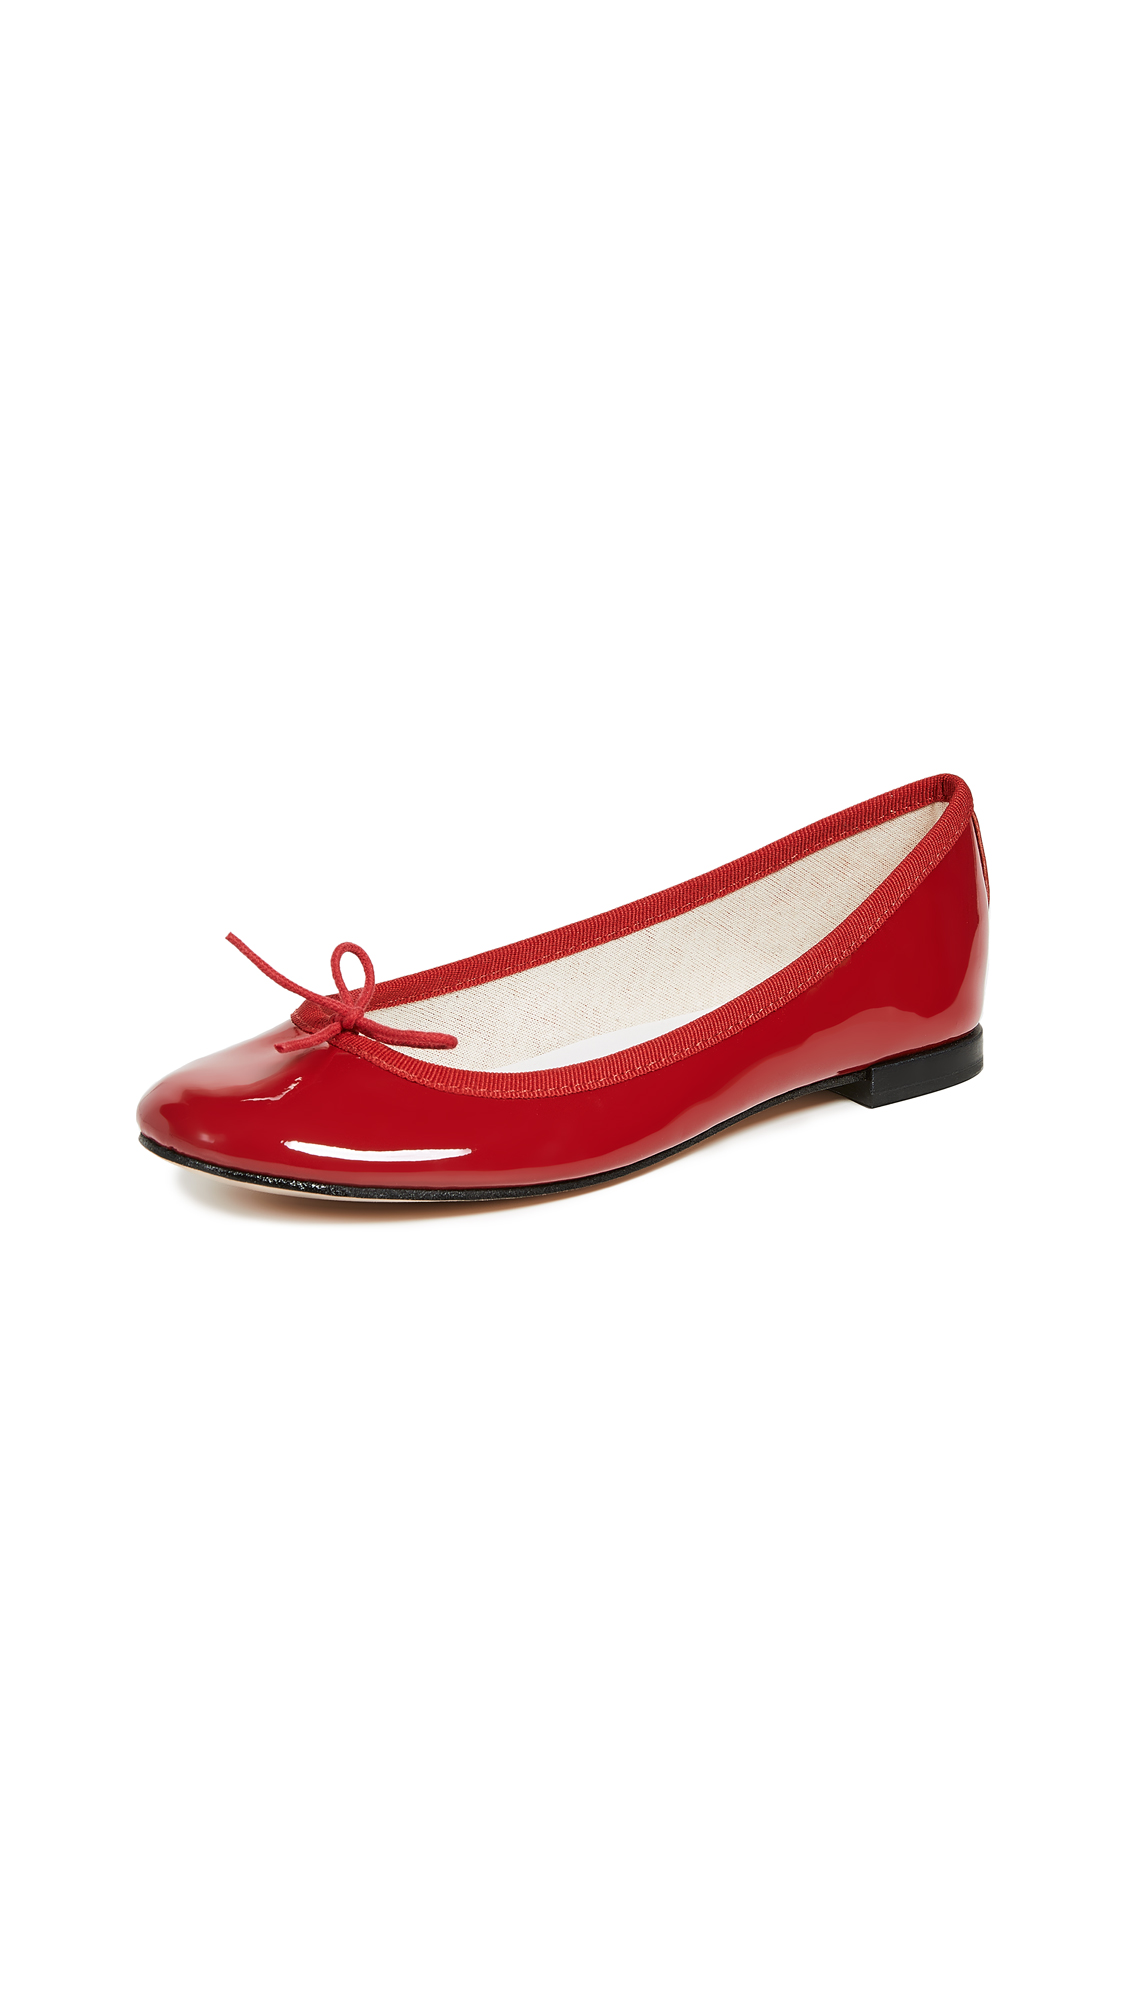 Repetto Cendrillon Ballet Flats - Flamme